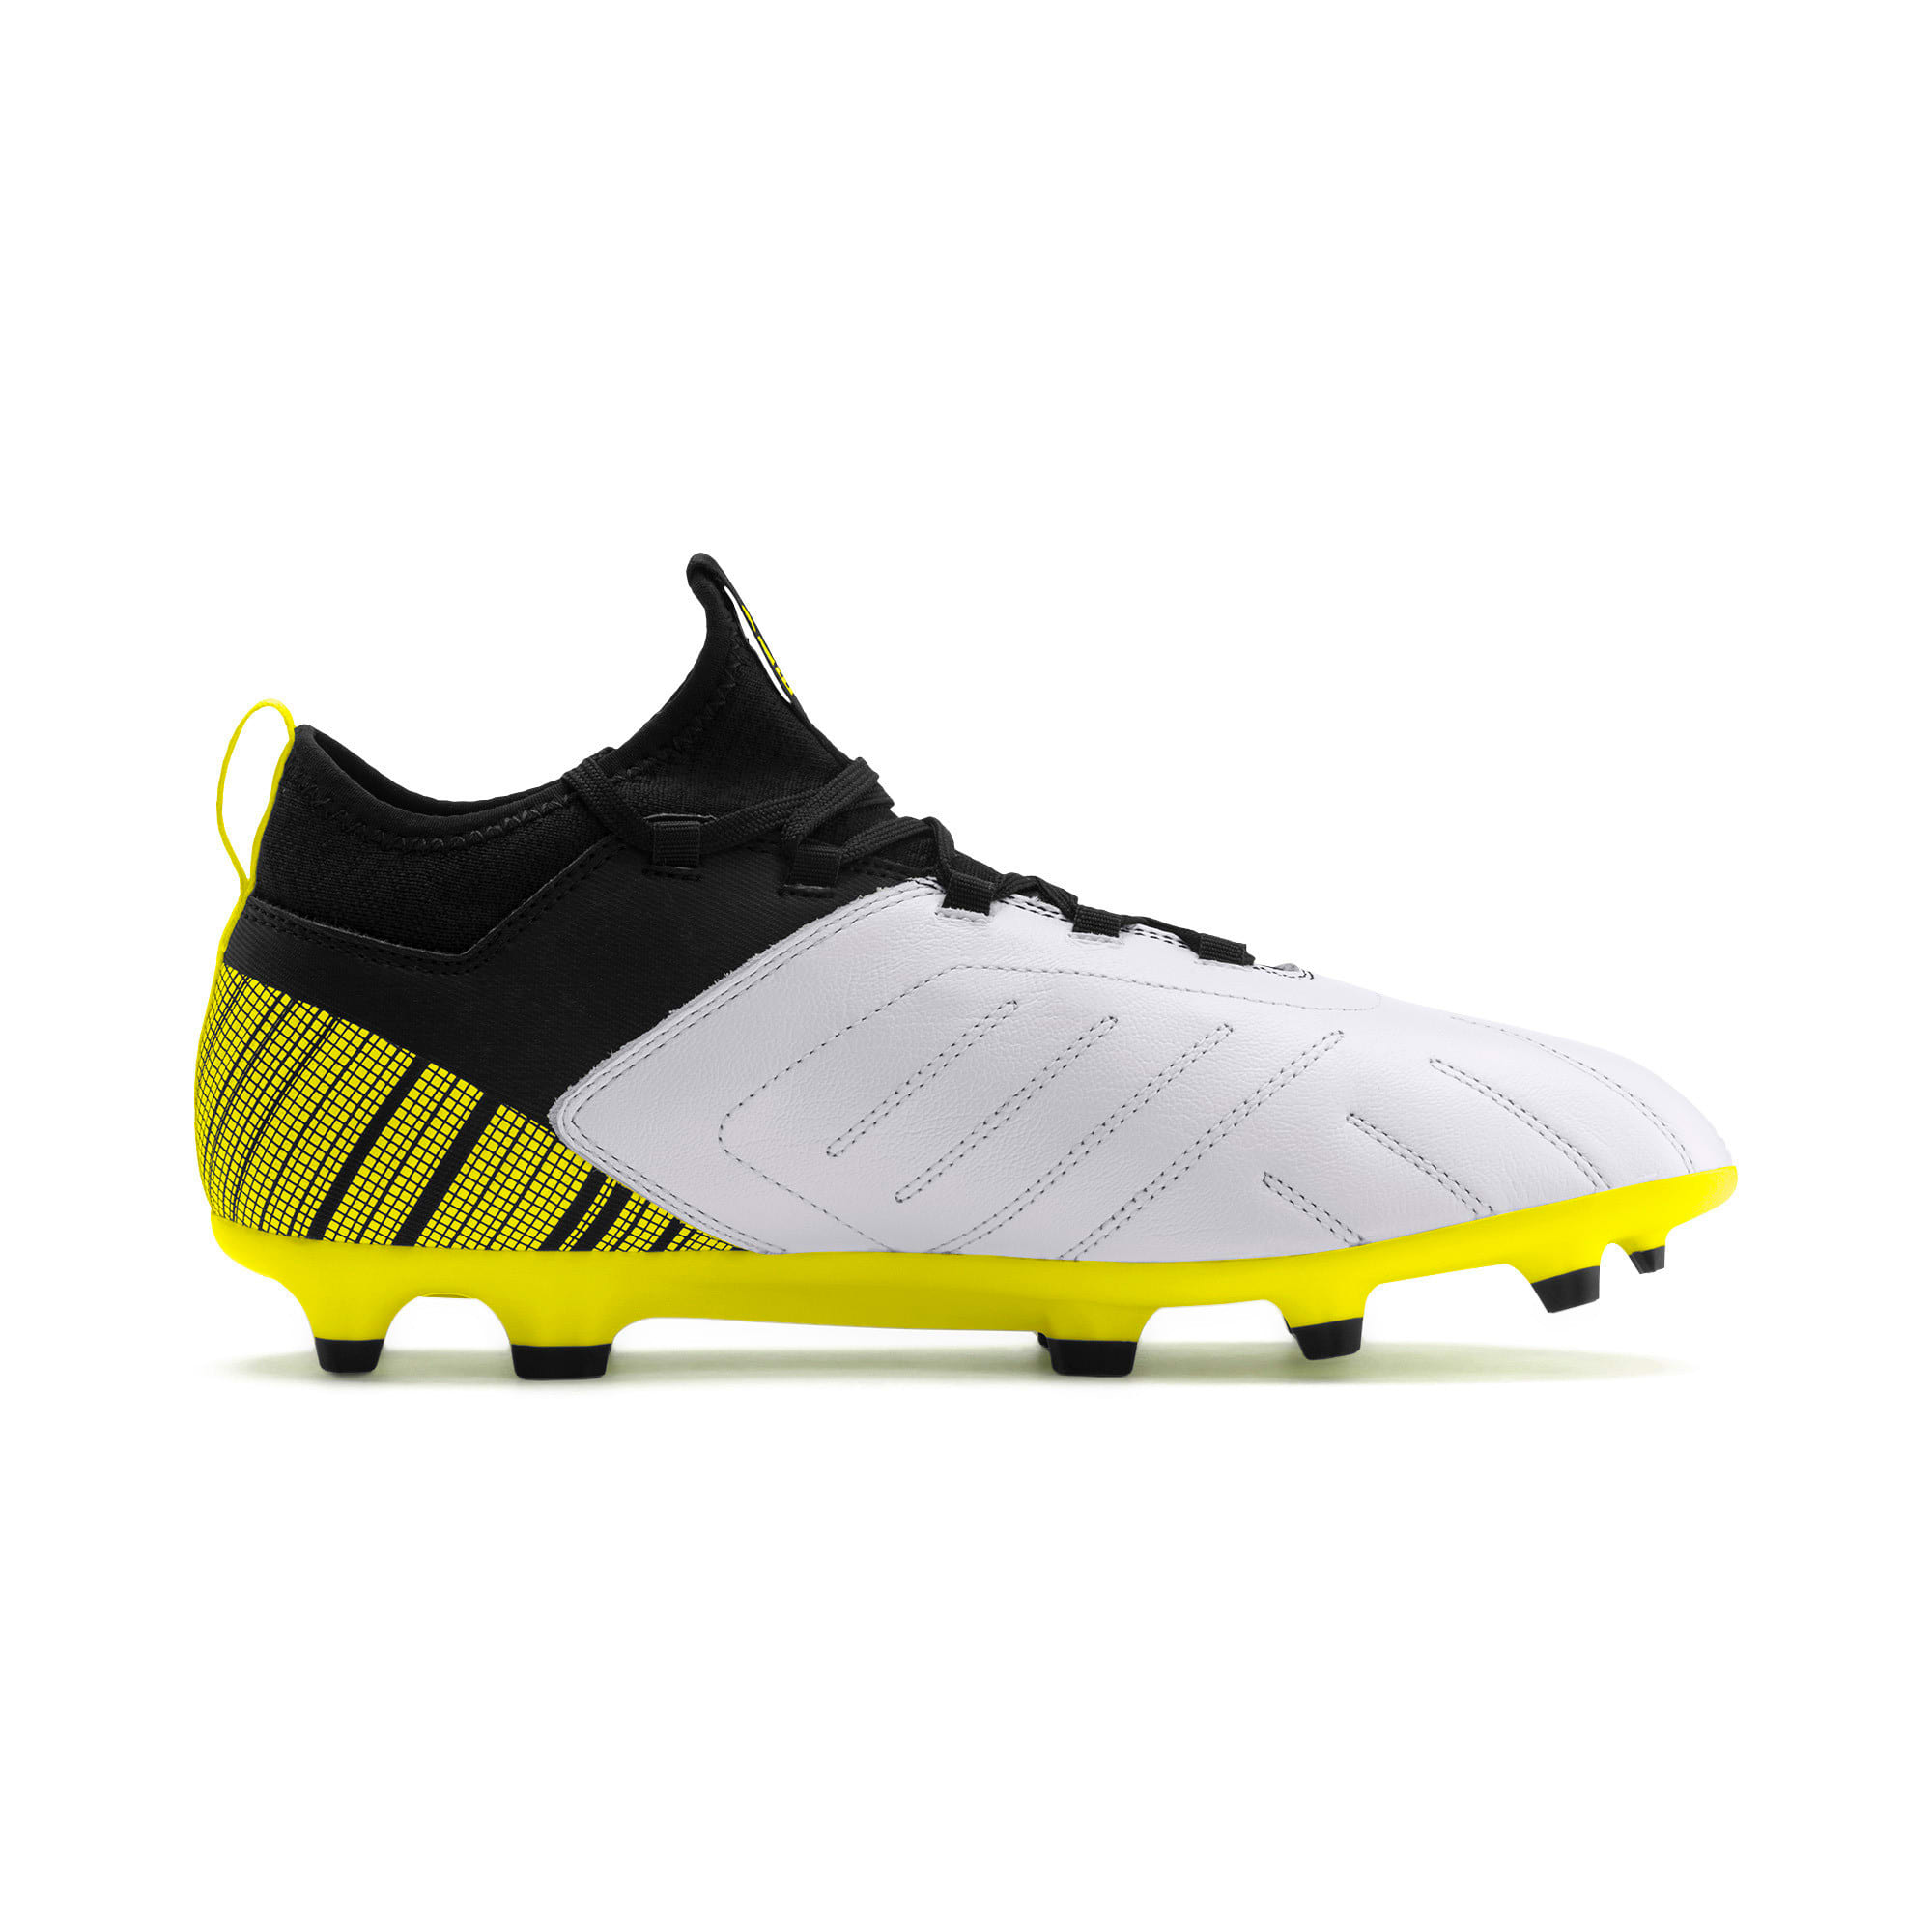 Thumbnail 6 of PUMA ONE 5.3 FG/AG voetbalschoenen voor heren, White-Black-Yellow Alert, medium